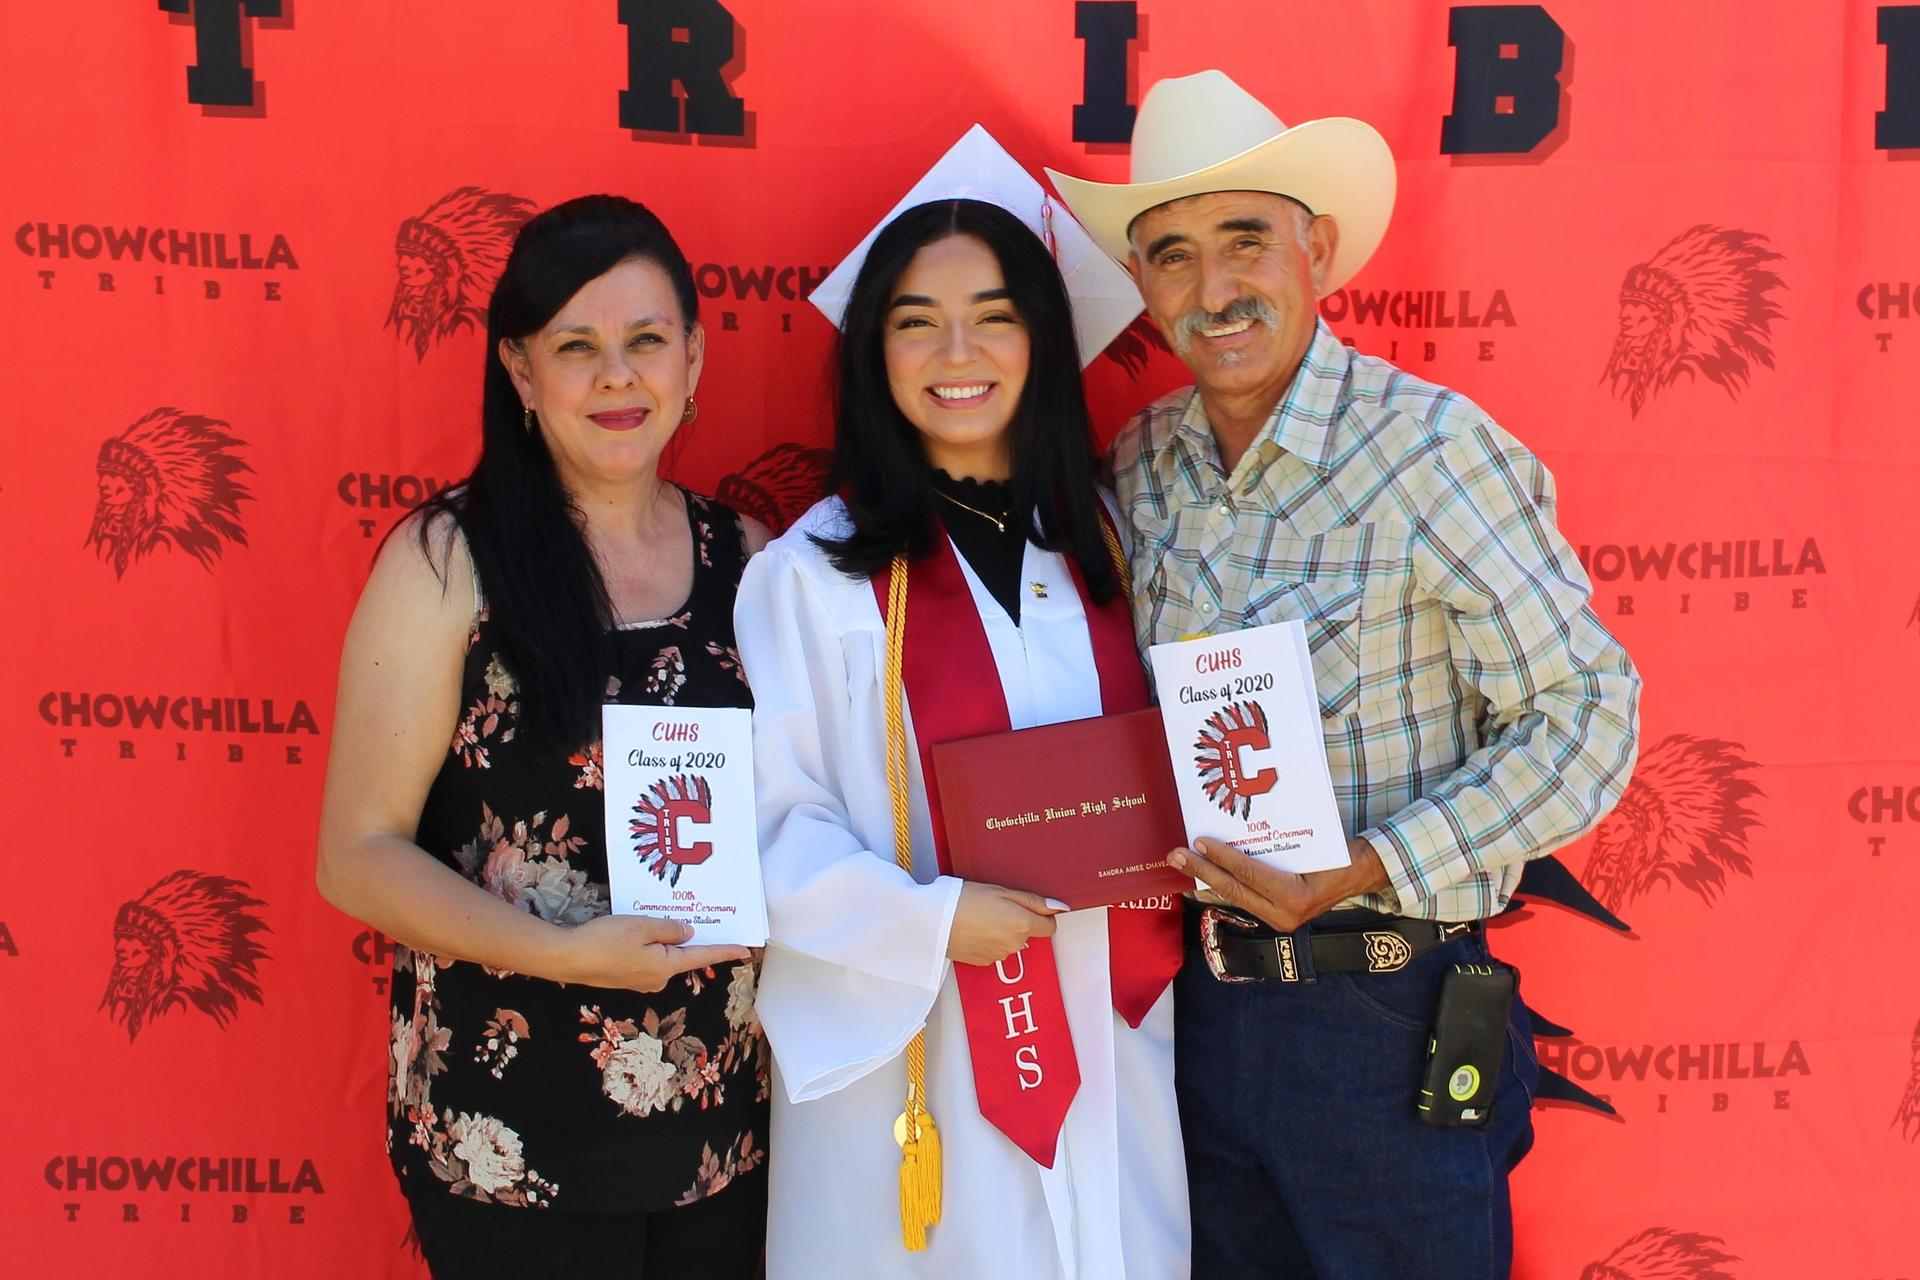 Sandra Chavez and family